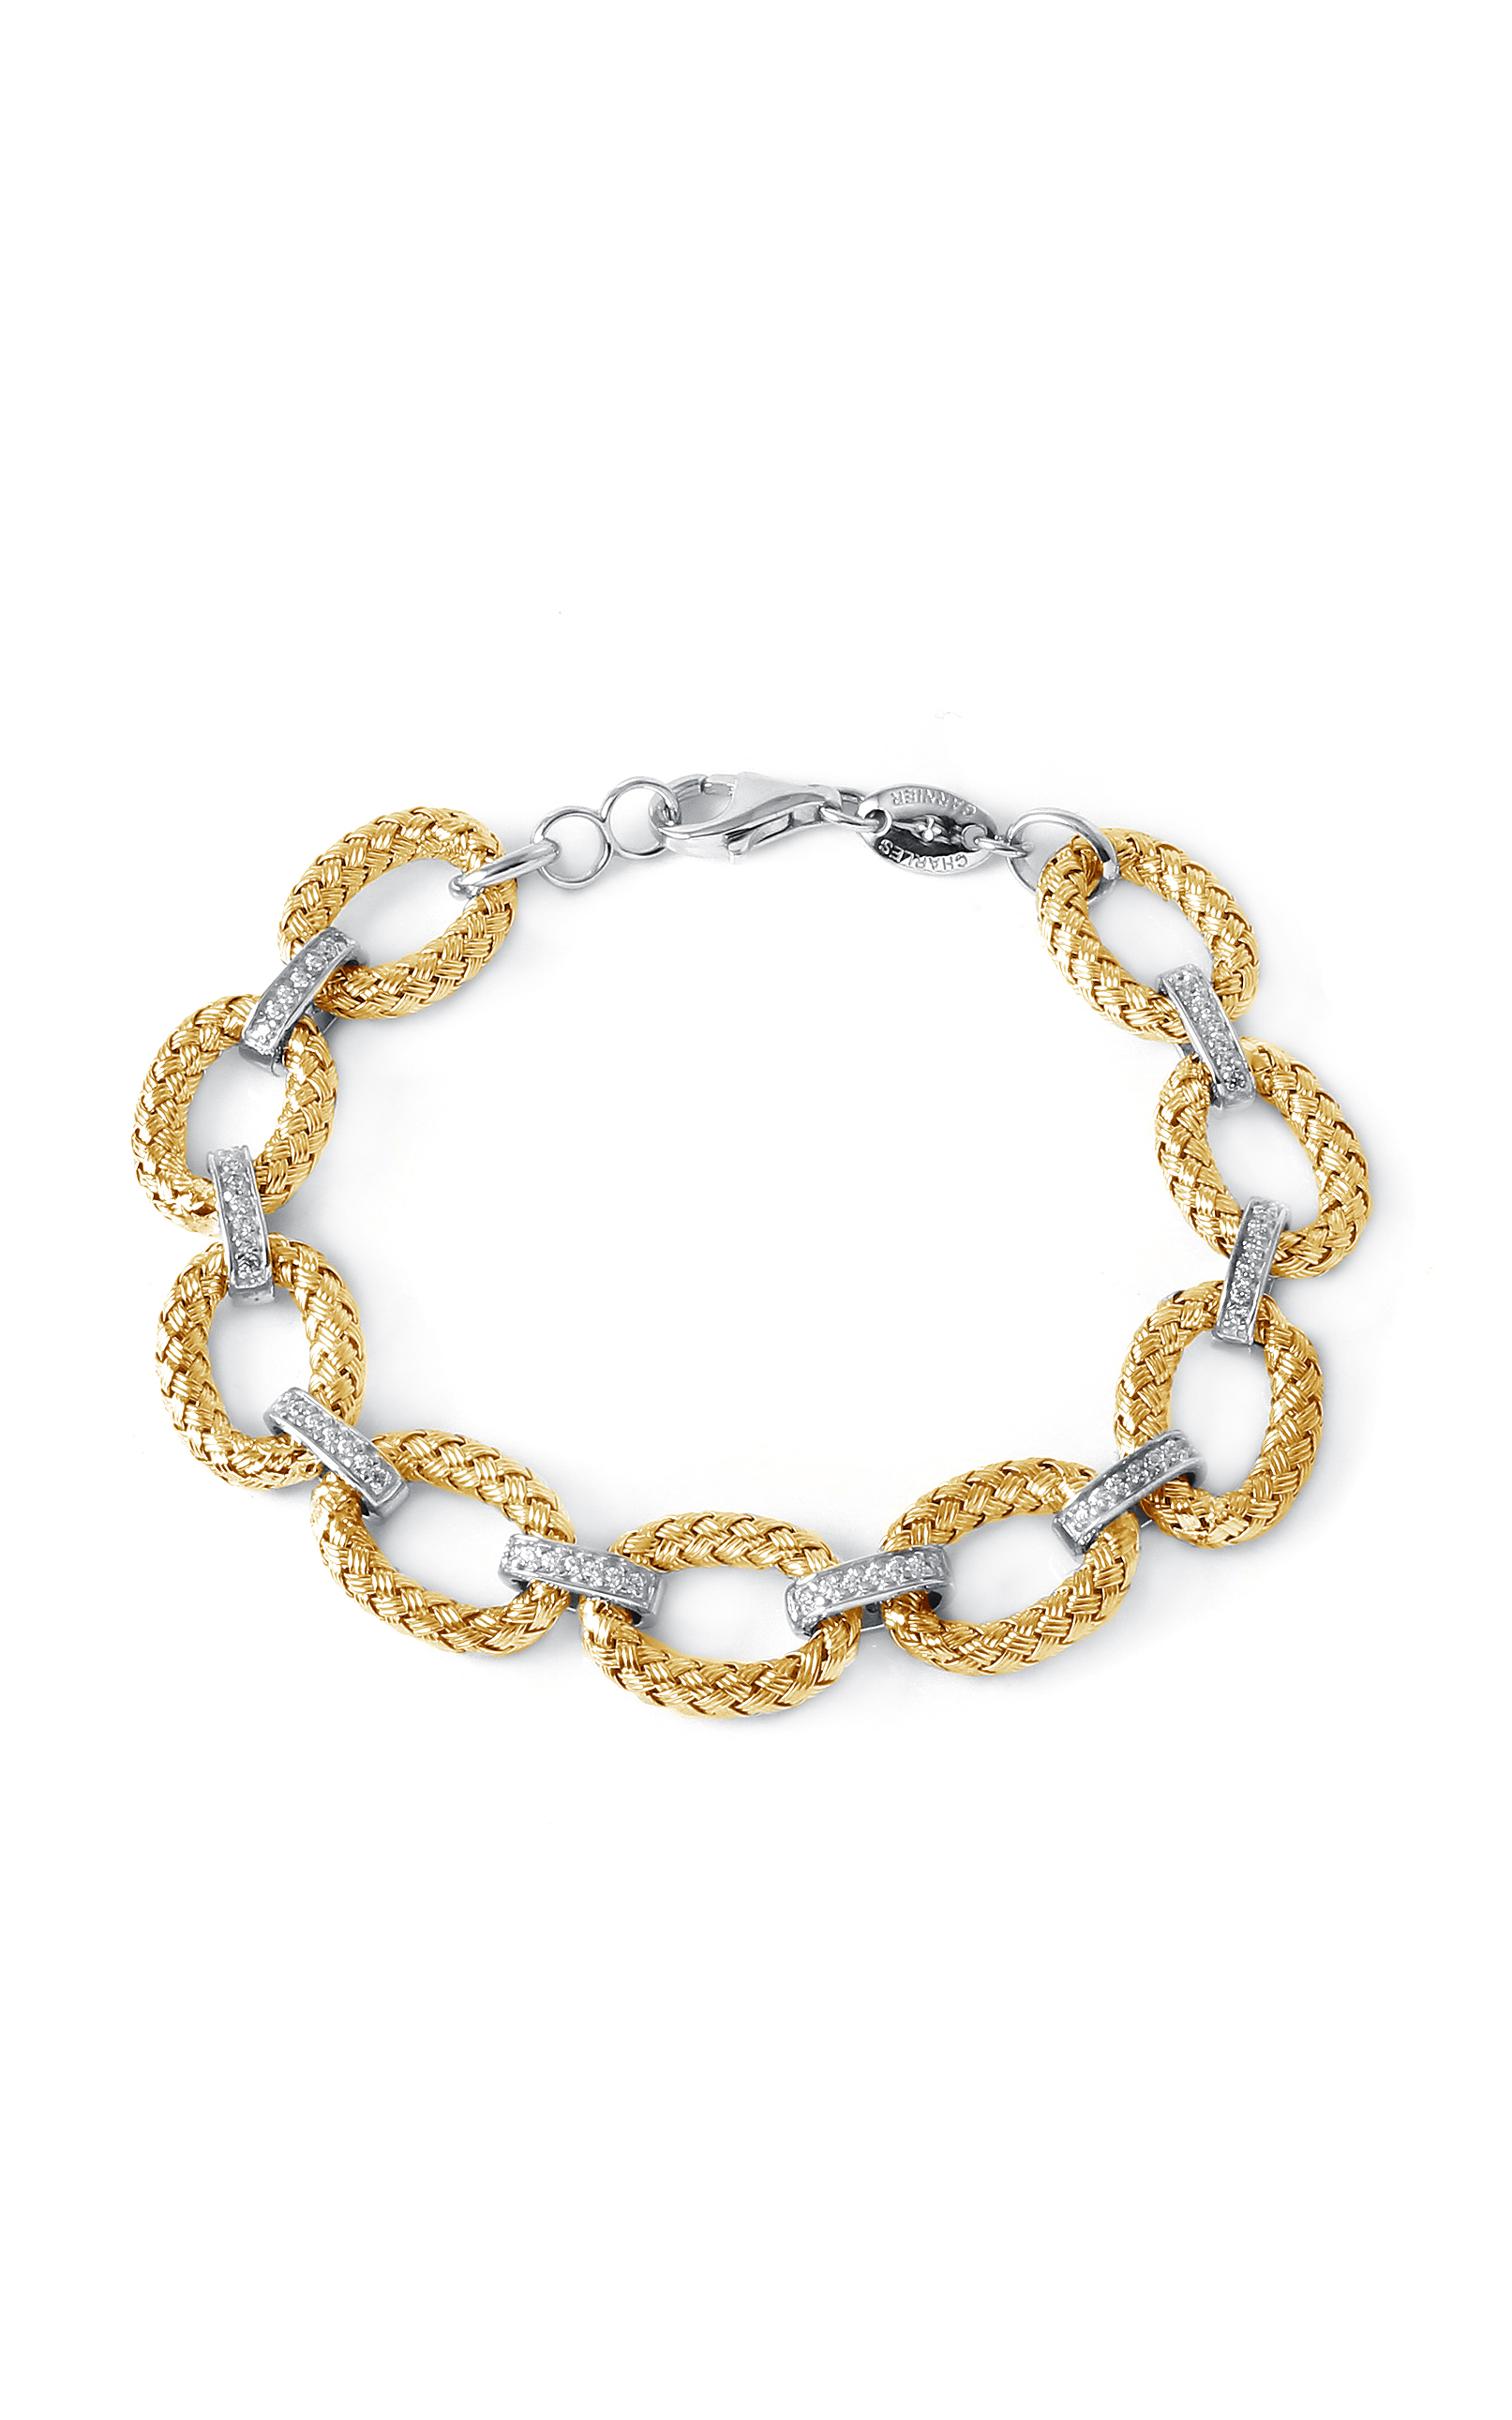 Charles Garnier Bracelets Bracelet Paolo Collection MLD8204YWZ75 product image